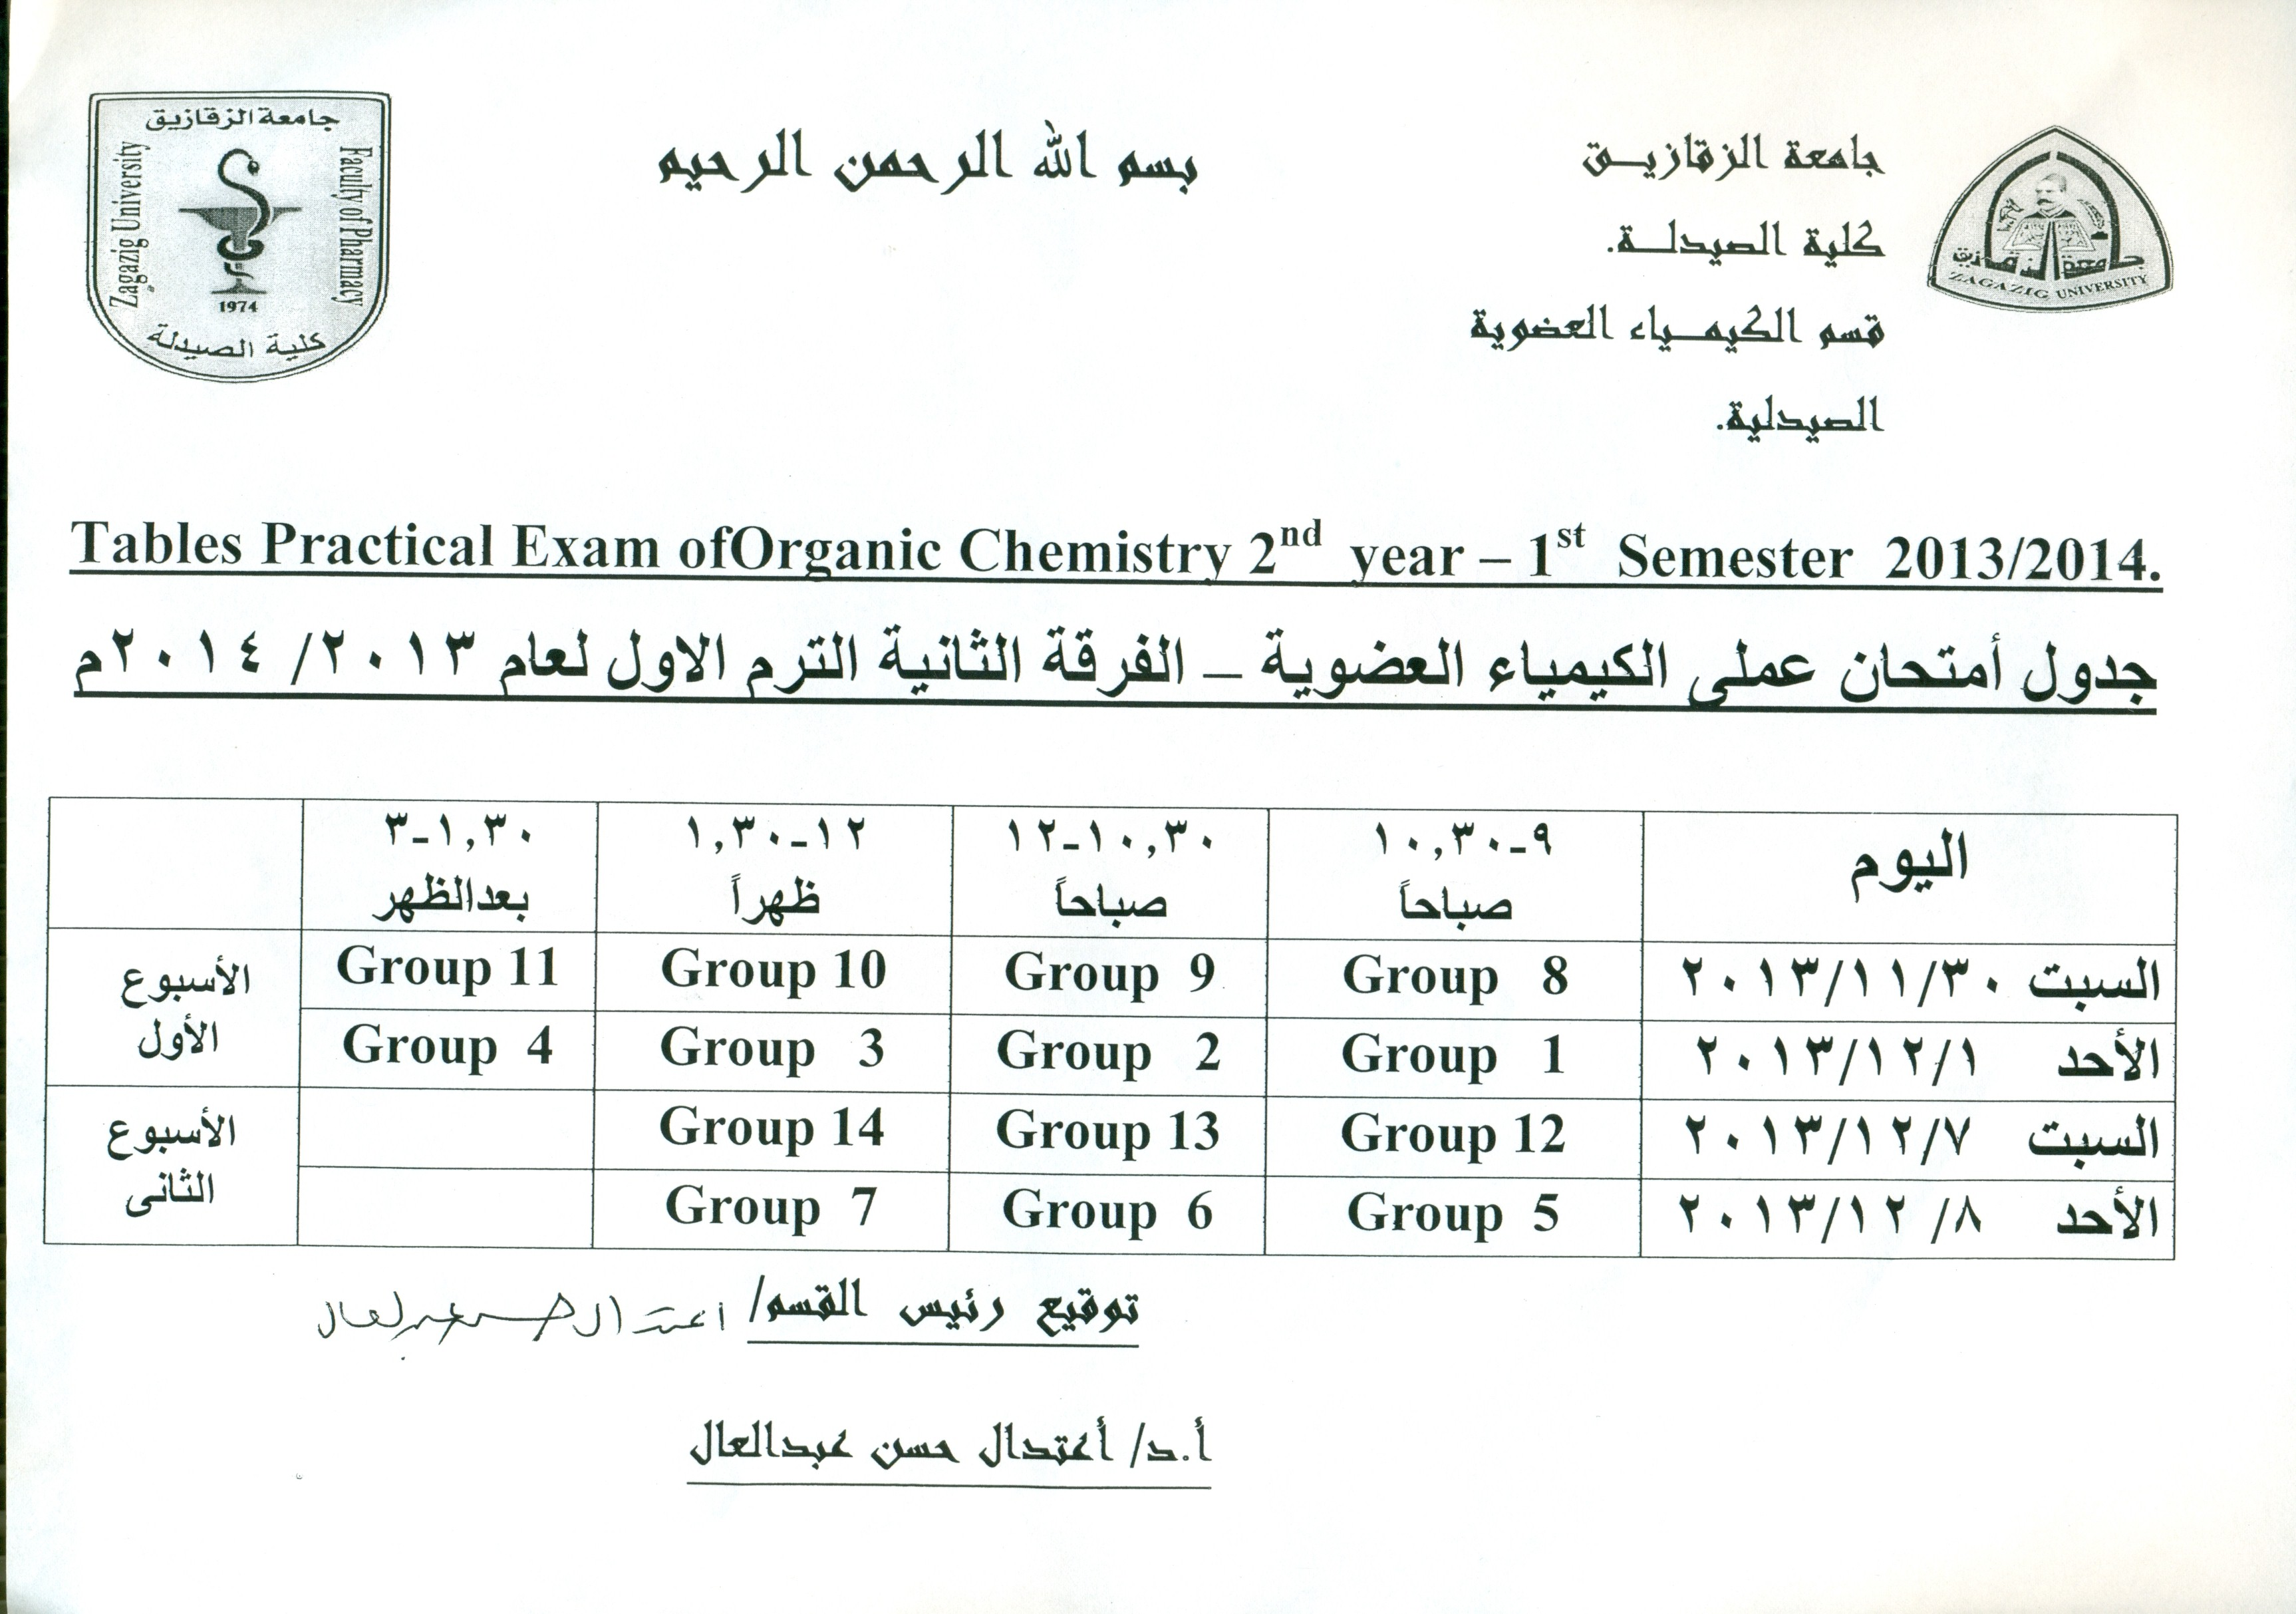 Schedule a practical test of Organic Chemistry Division II _ the first semester of 2013/2014